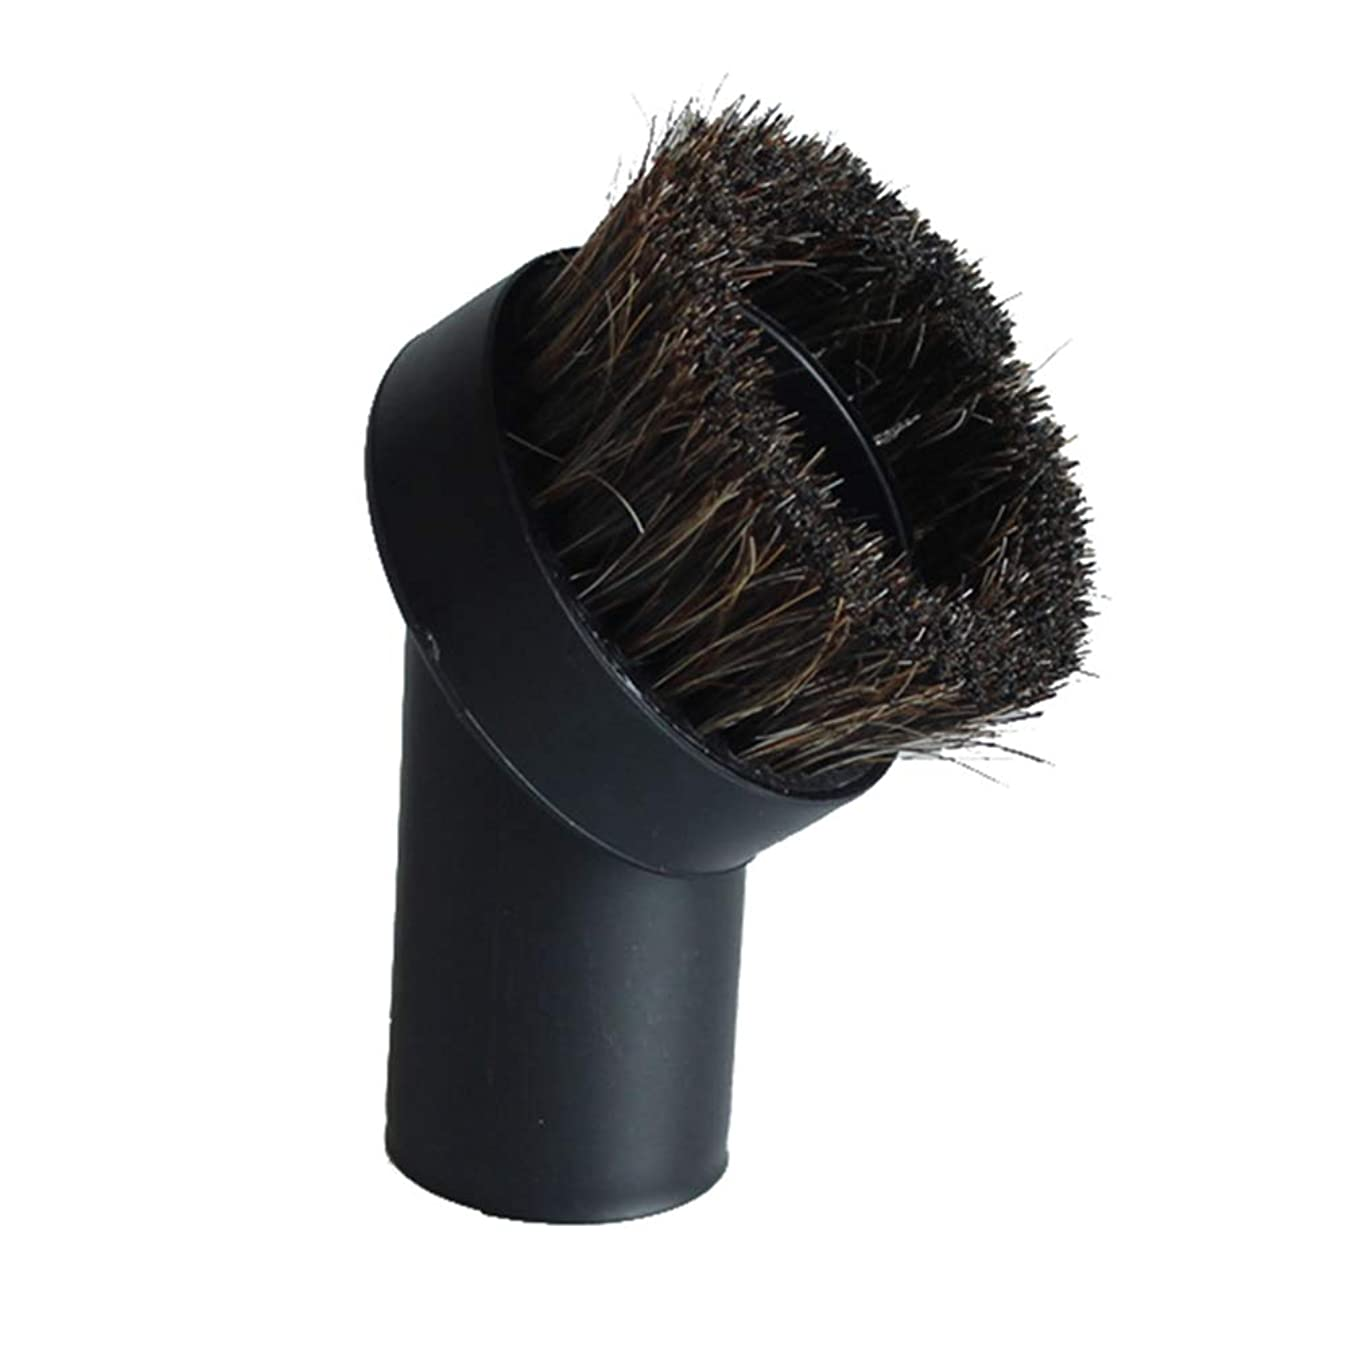 GIBTOOL Replacement Round Dusting Brush Soft Horsehair Bristle Vacuum Attachment 1.25